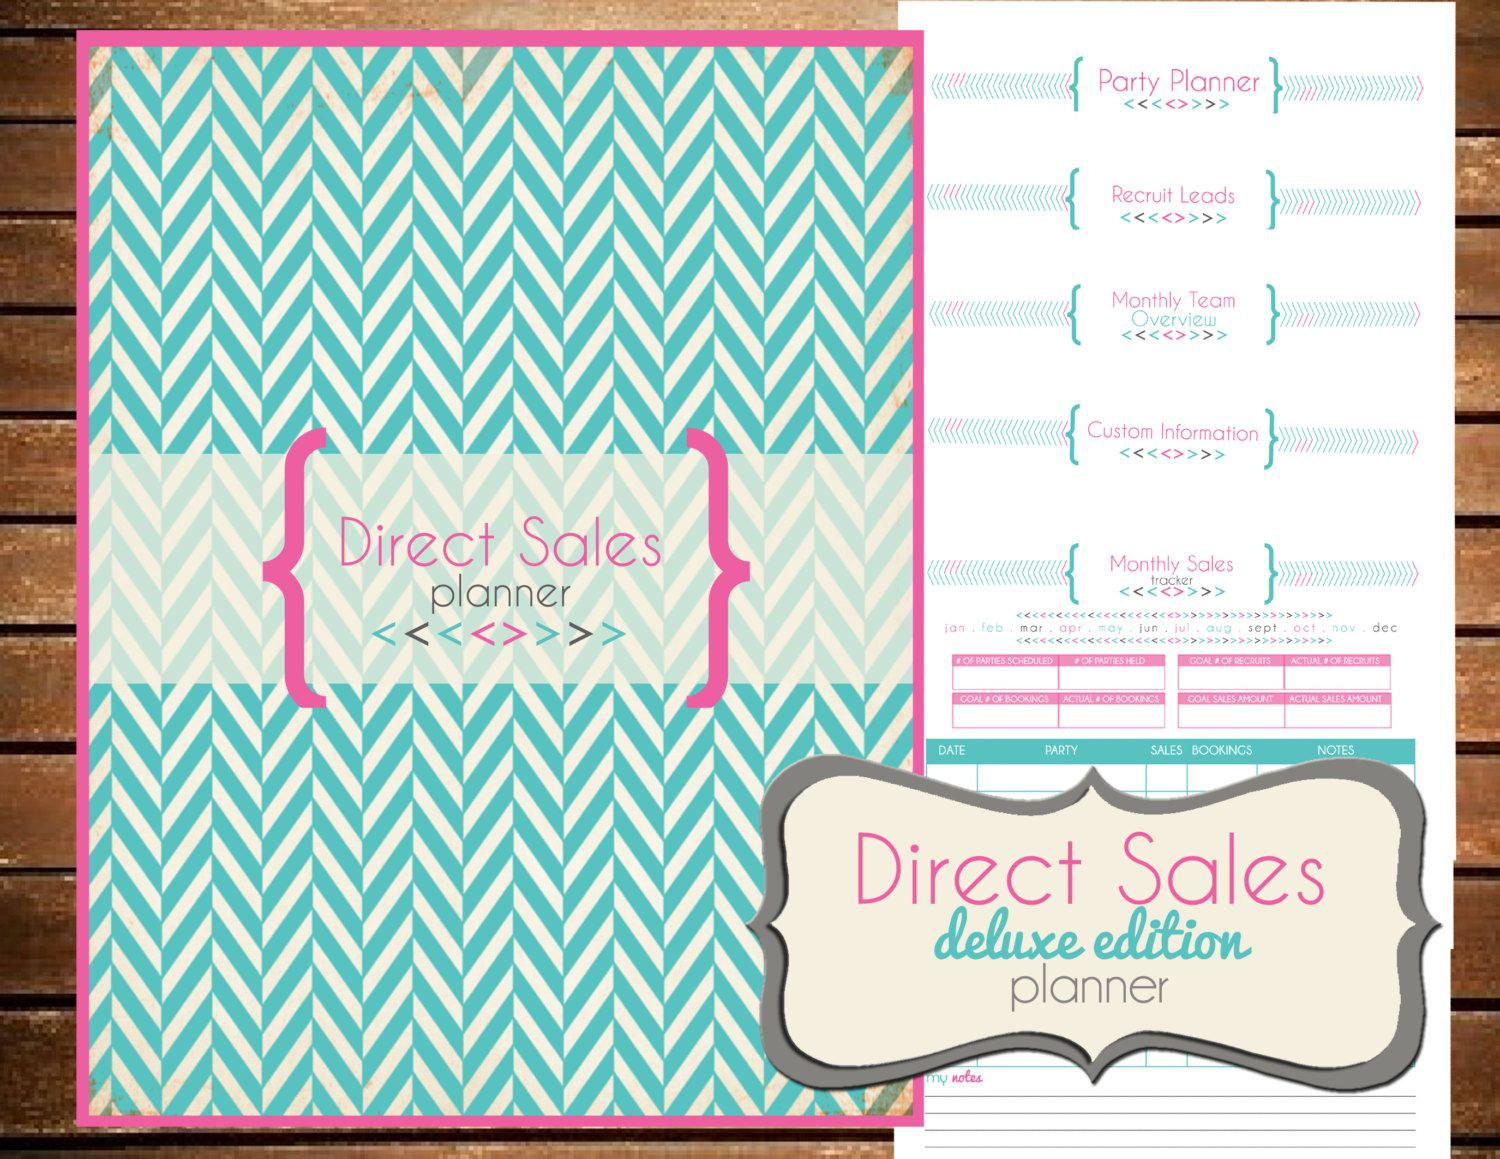 Direct Sales Planner Home Business Planner Blank Calendar